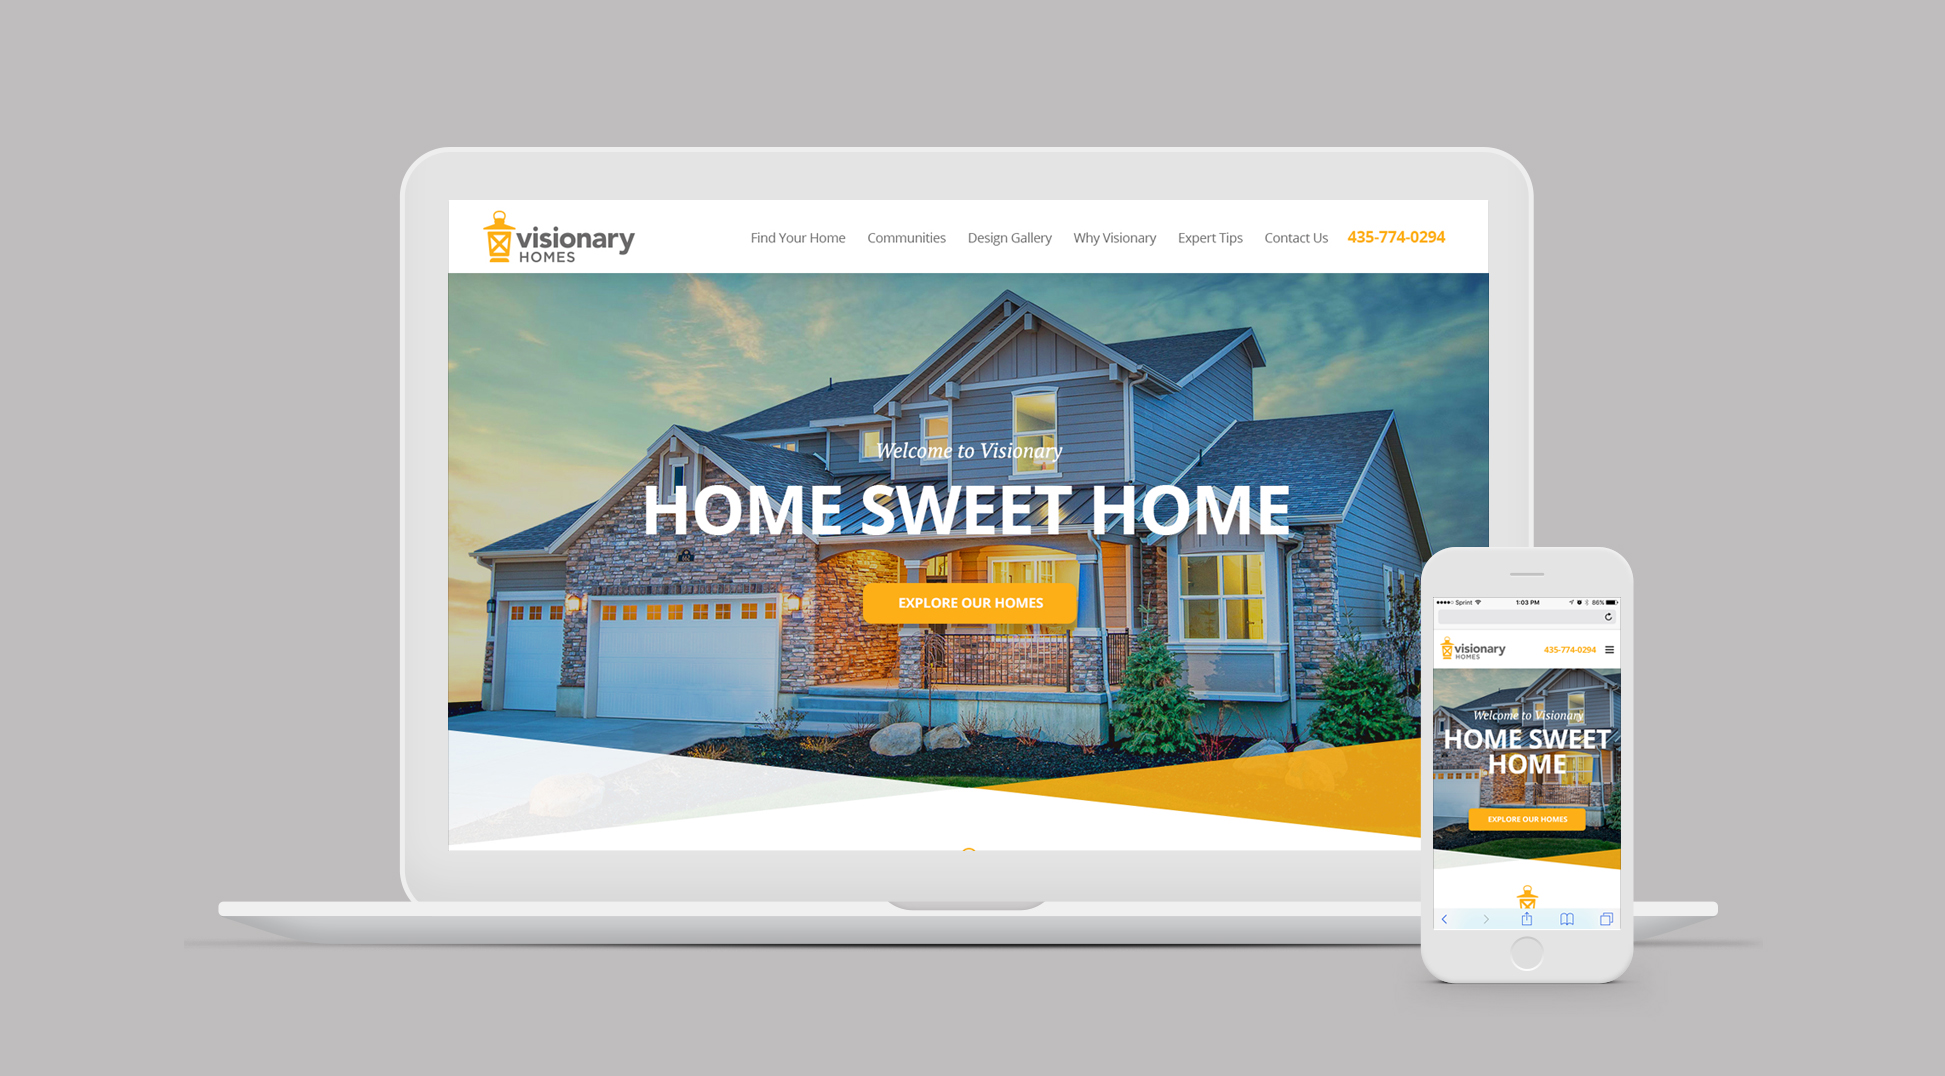 Visionary Homes website homepage on laptop screen